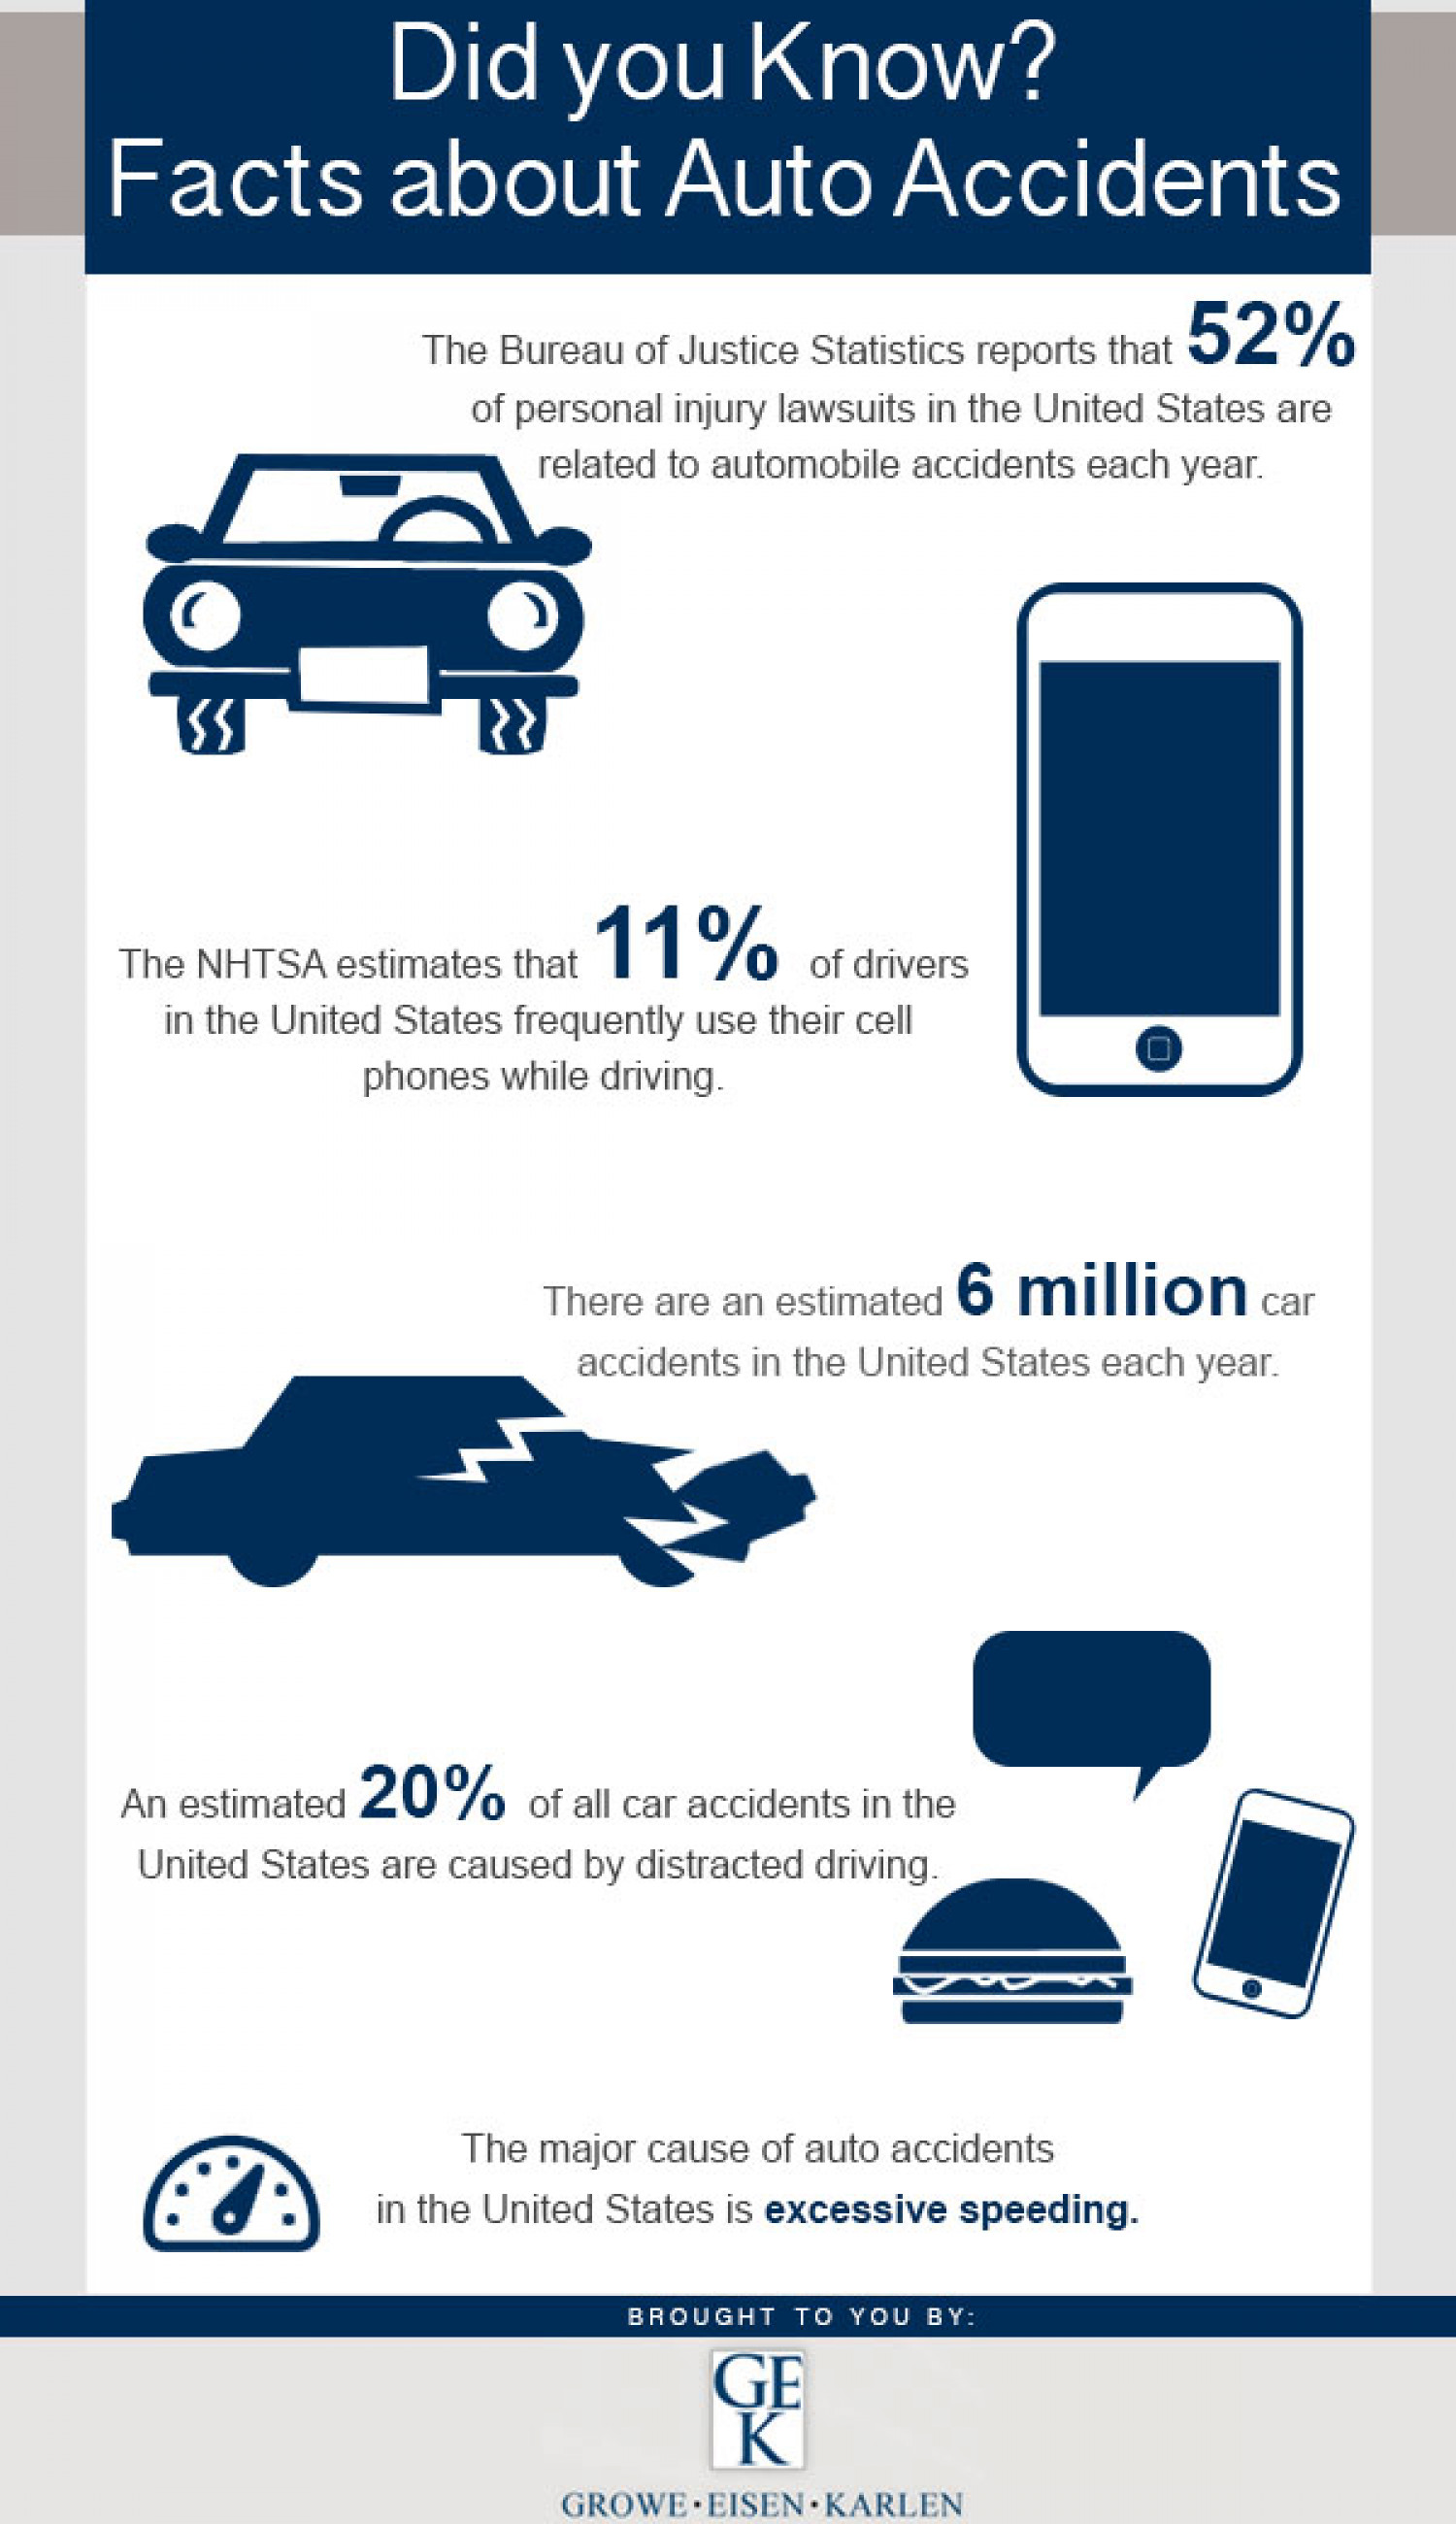 Auto Accident Facts Infographic